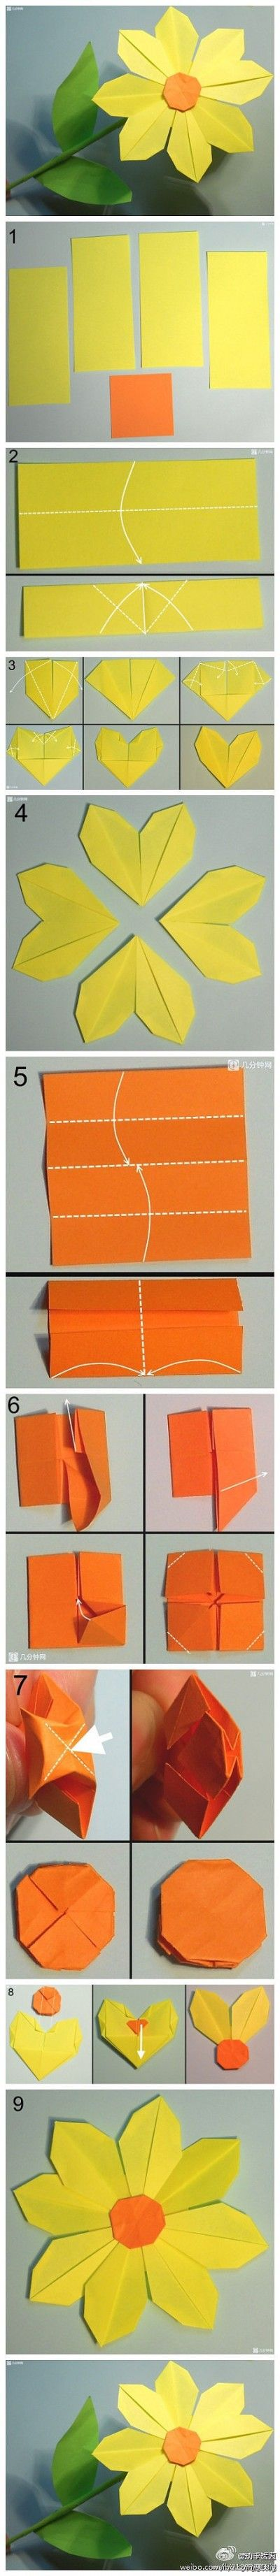 How to make pretty paper craft origami yellow flower step by step how to make pretty paper craft origami yellow flower step by step jeuxipadfo Gallery